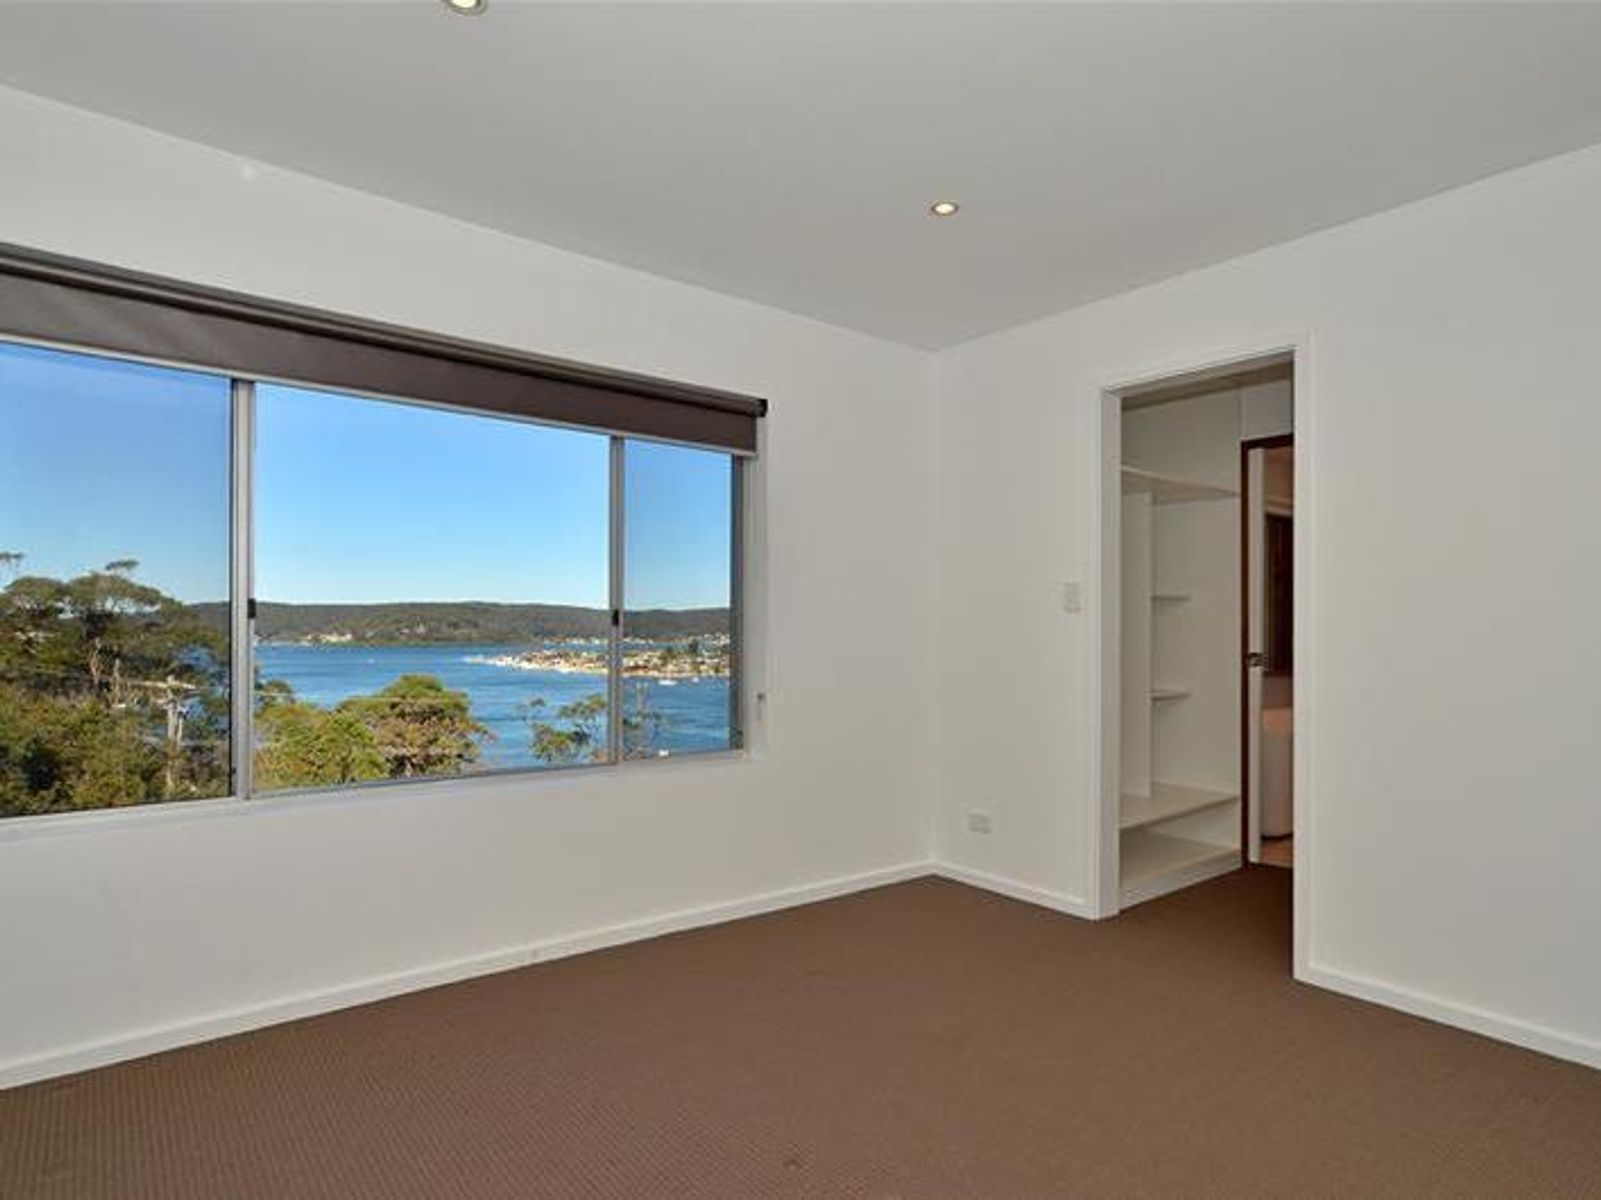 59 Daley Avenue, Daleys Point, NSW 2257